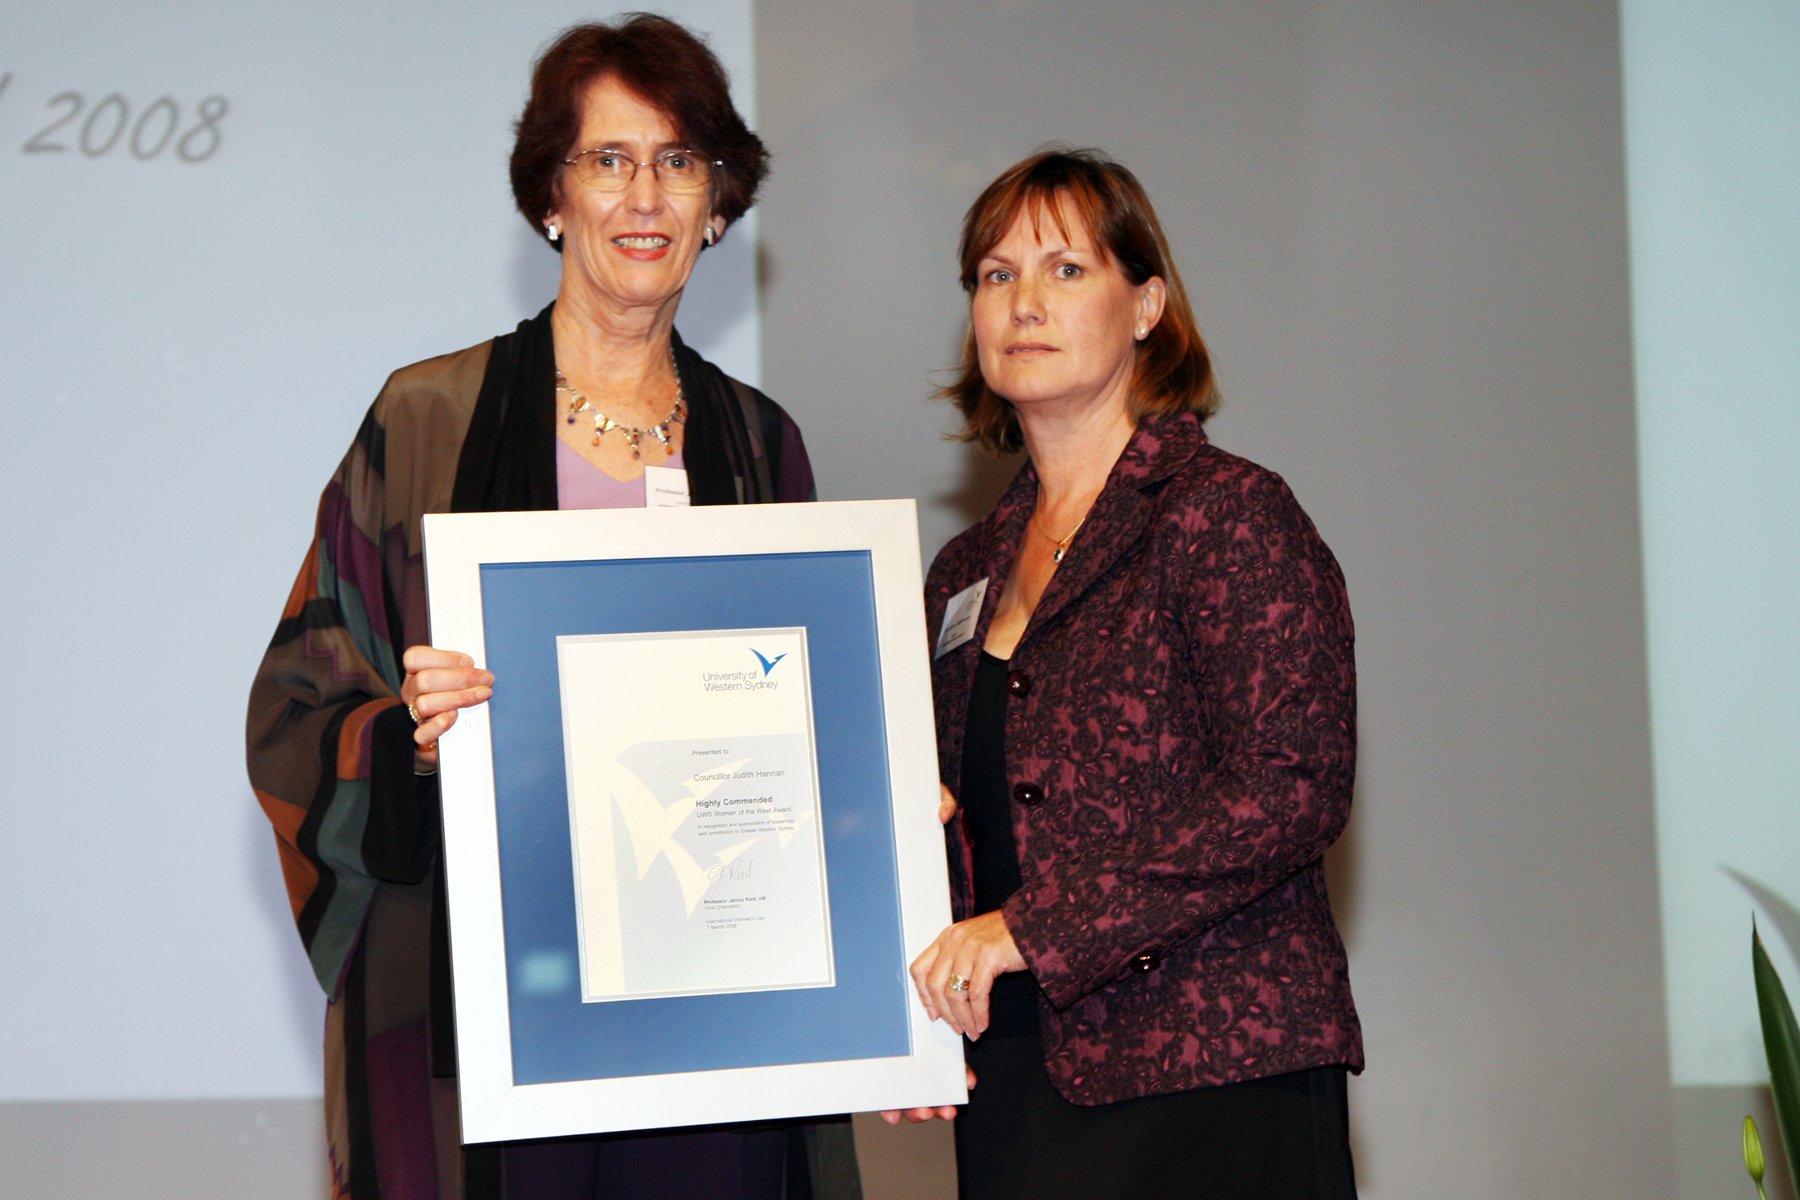 Councillor Judith Hannan is presented with the Highly Commended Award by Vice-Chancellor Professor Janice Reid AM